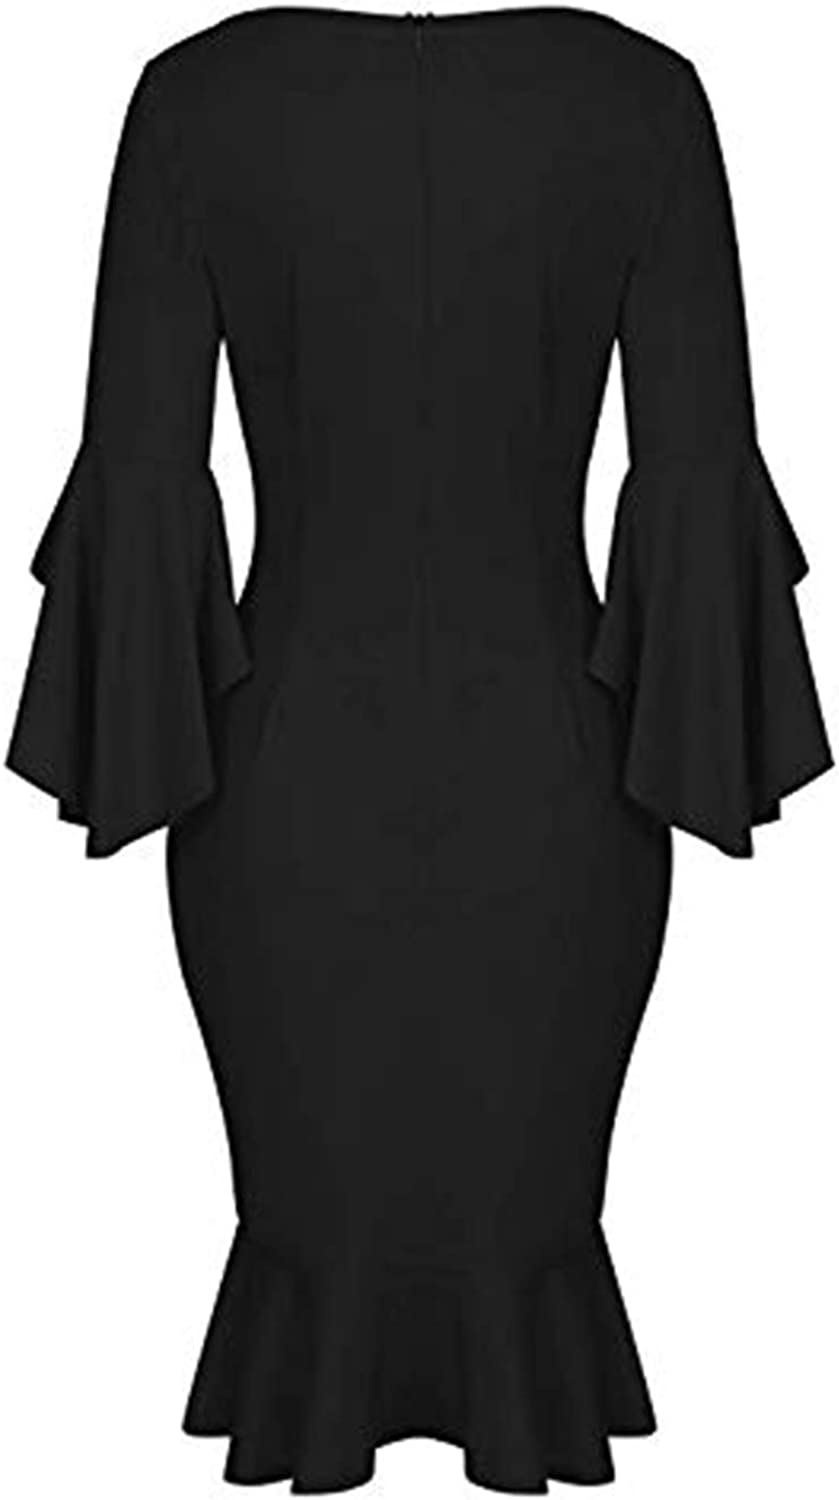 Jacansi Womens Ruffle Bell Sleeve Square Neck Knee Length Cocktail Party Dress S-2XL